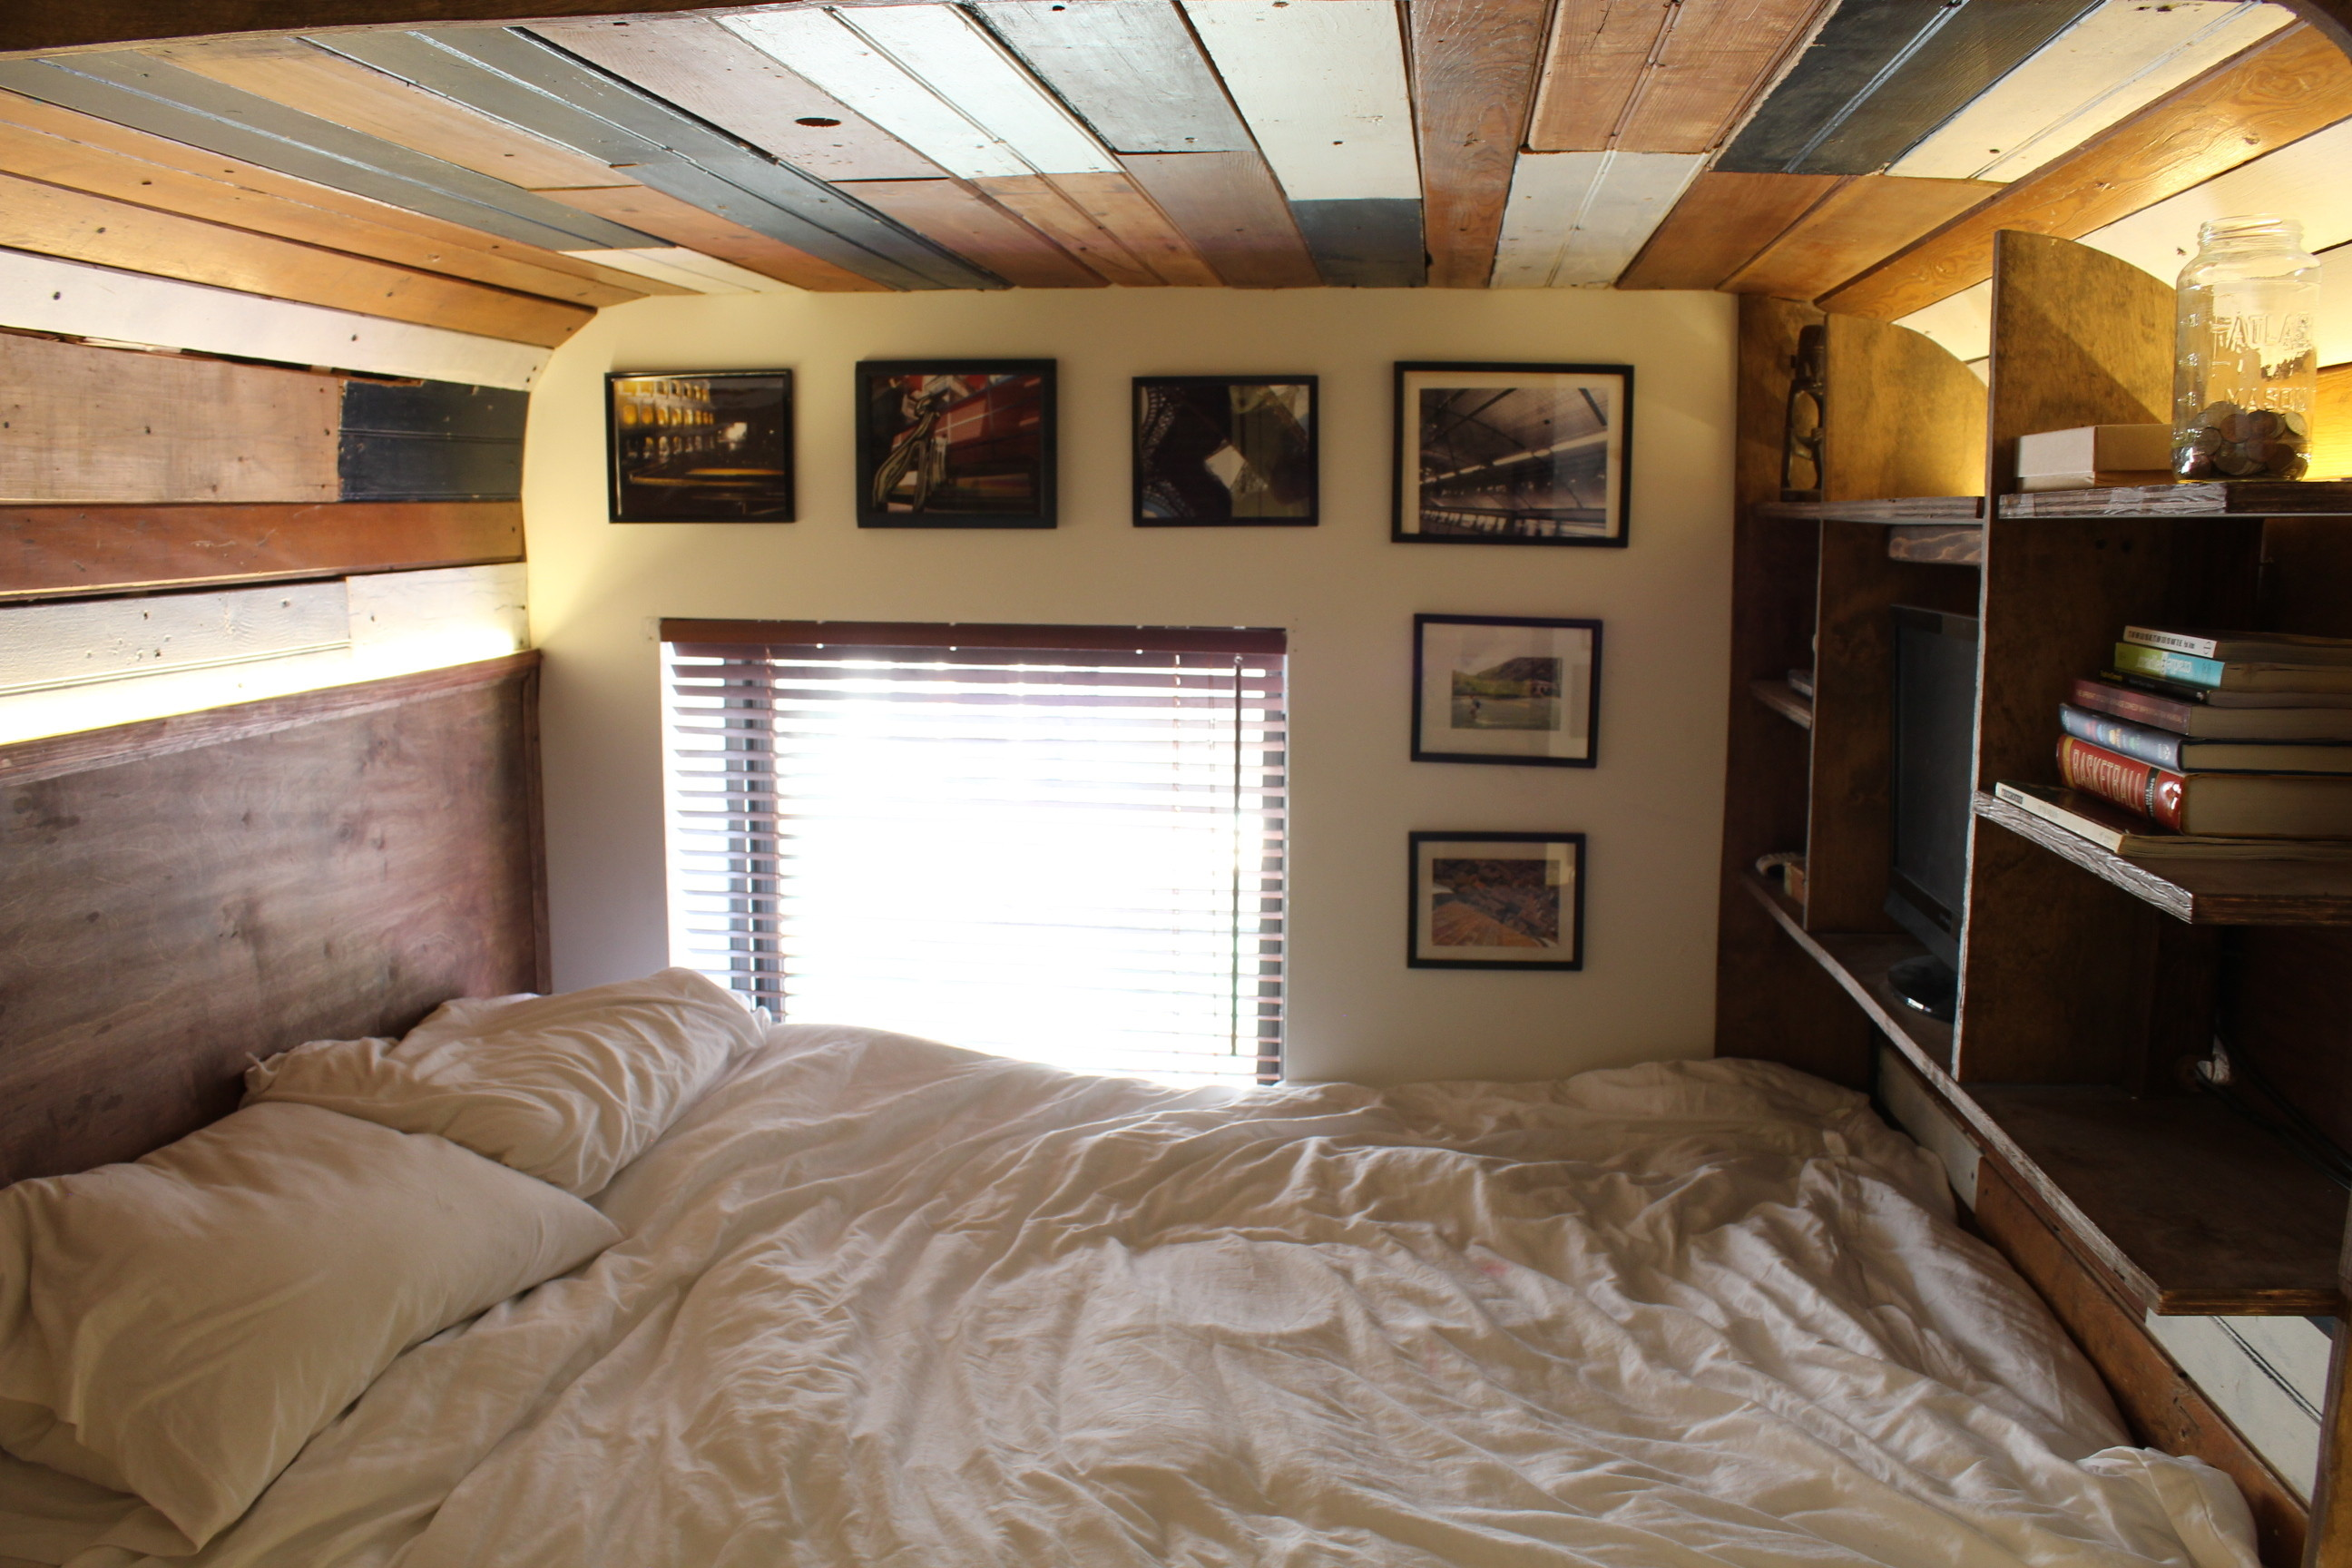 attic rooms decoration ideas - Watch This Tiny Studio Transform Into A Two Bedroom